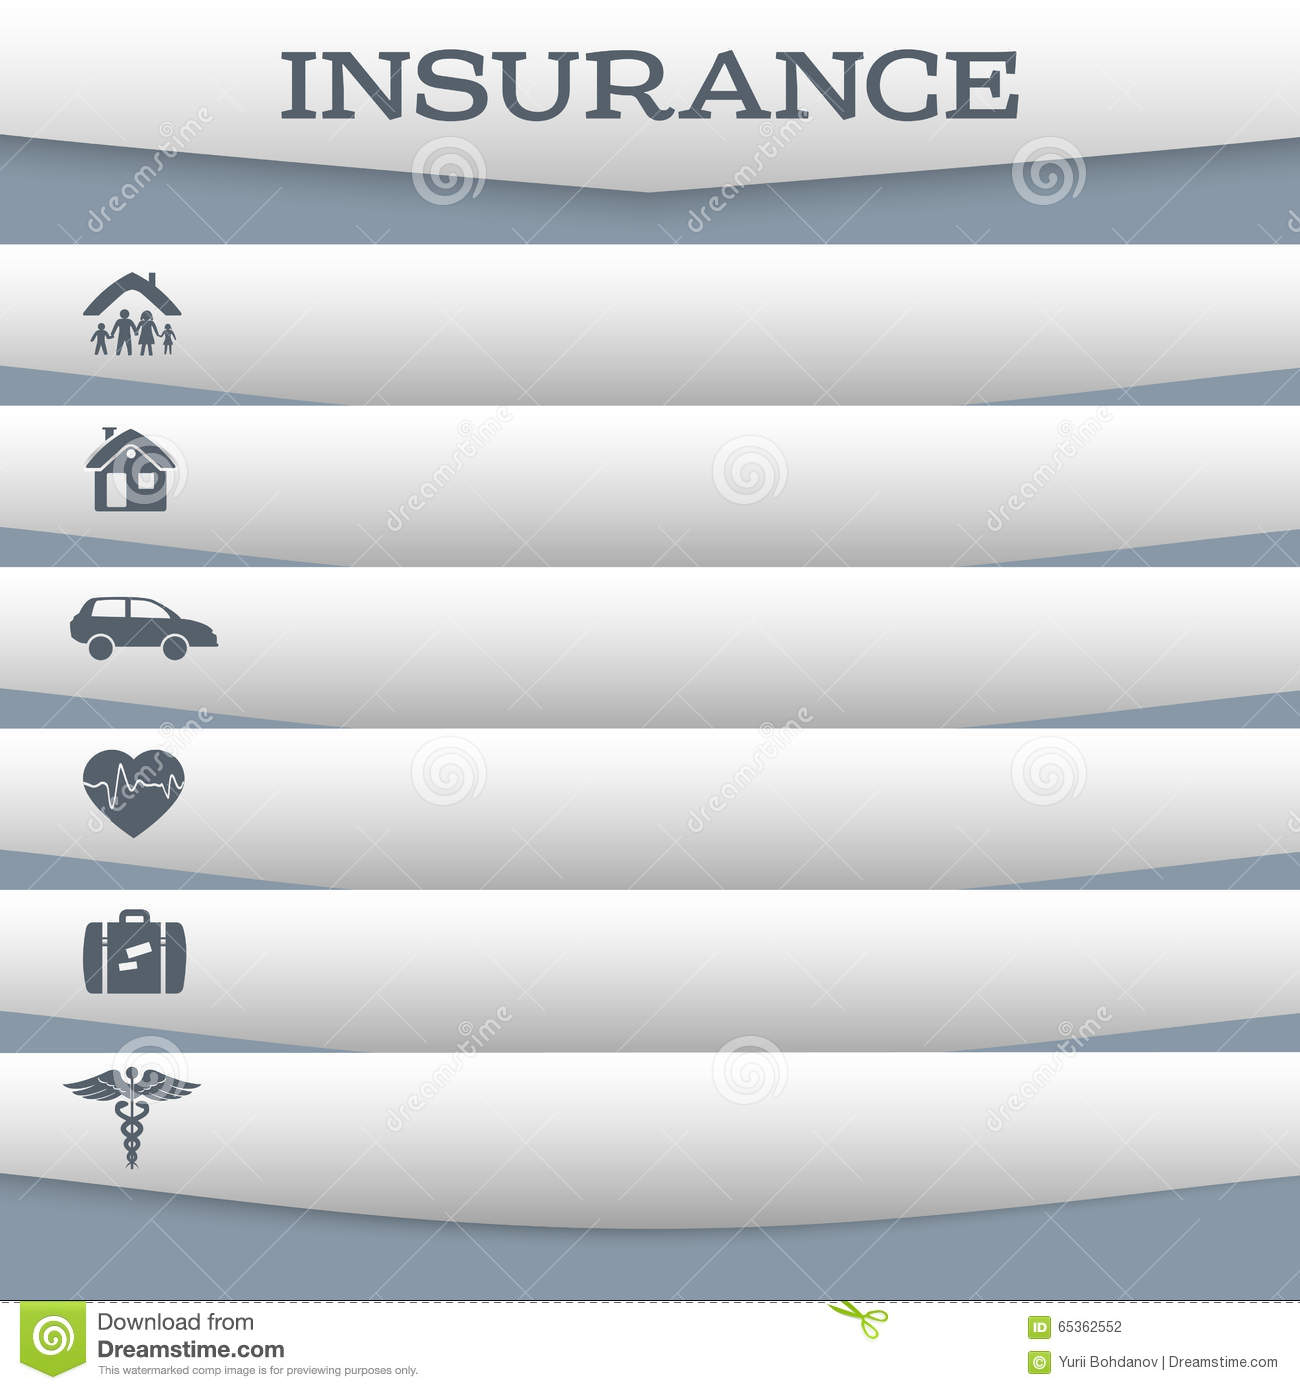 Using stock options as insurance